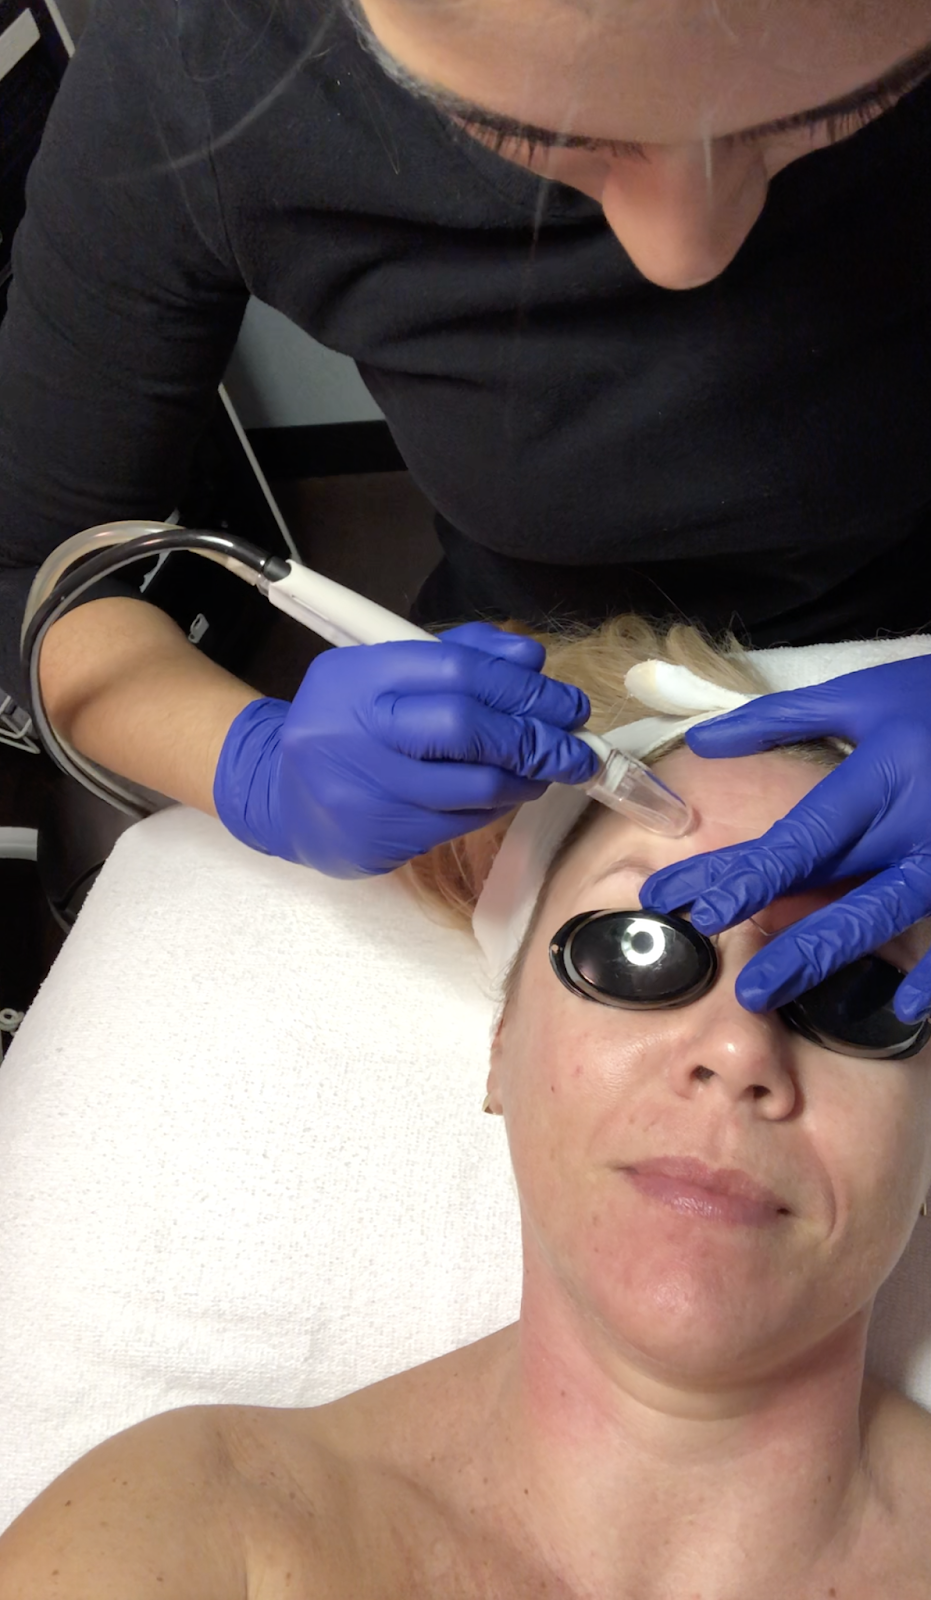 Microdermabrasion vs Dermaplaning: which one is better?